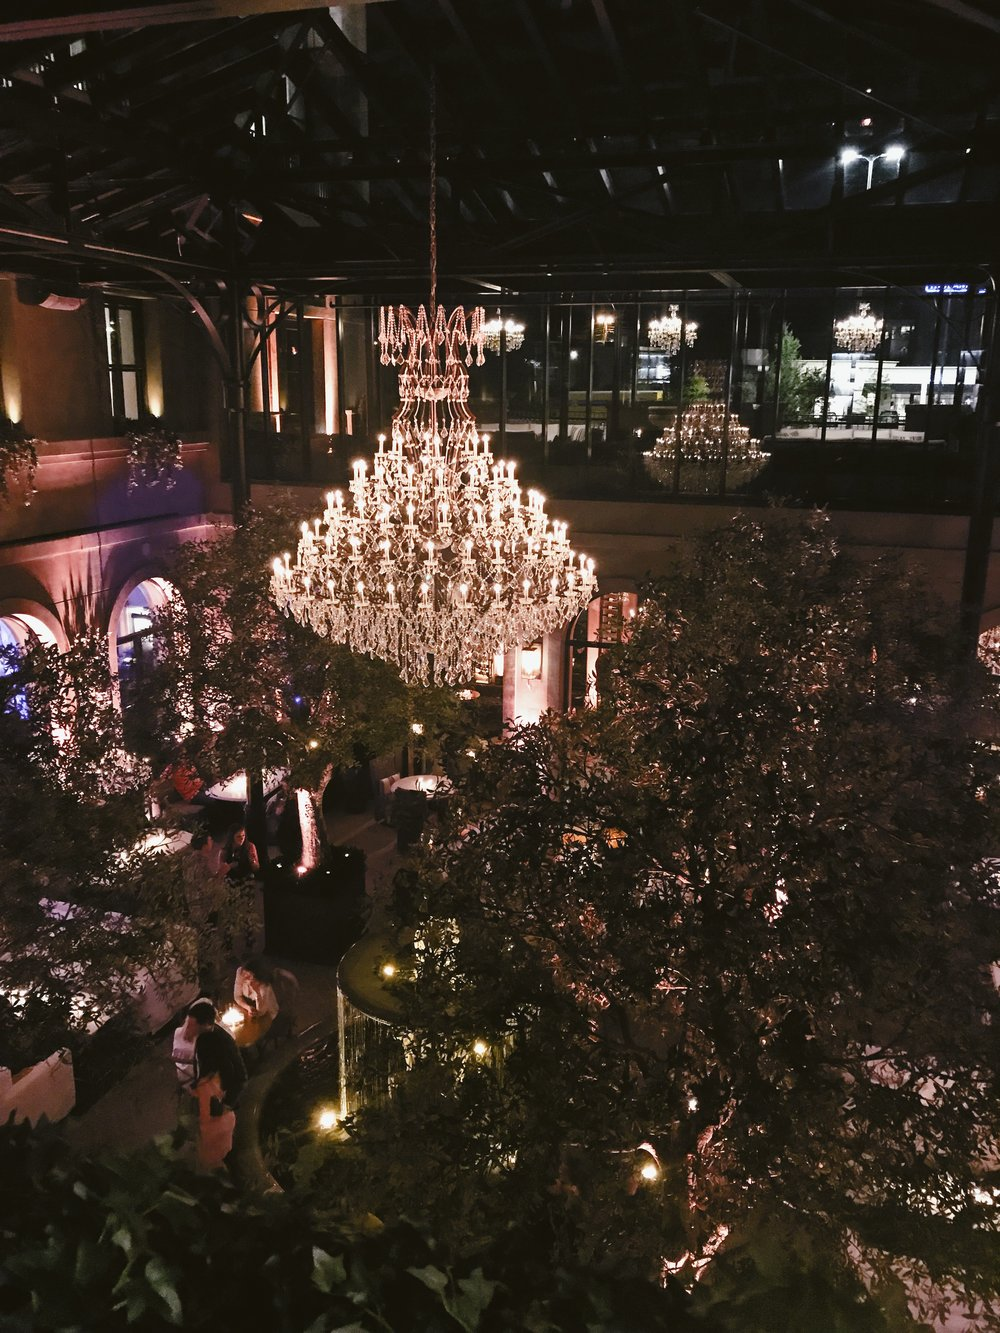 The view overlooking the Restoration Hardware restaurant is incredible--chandeliers, greenery, and fountains make this space feel much more LA / Vegas / NYC than Nashville. If you're looking for a new Nashville spot - this is it!